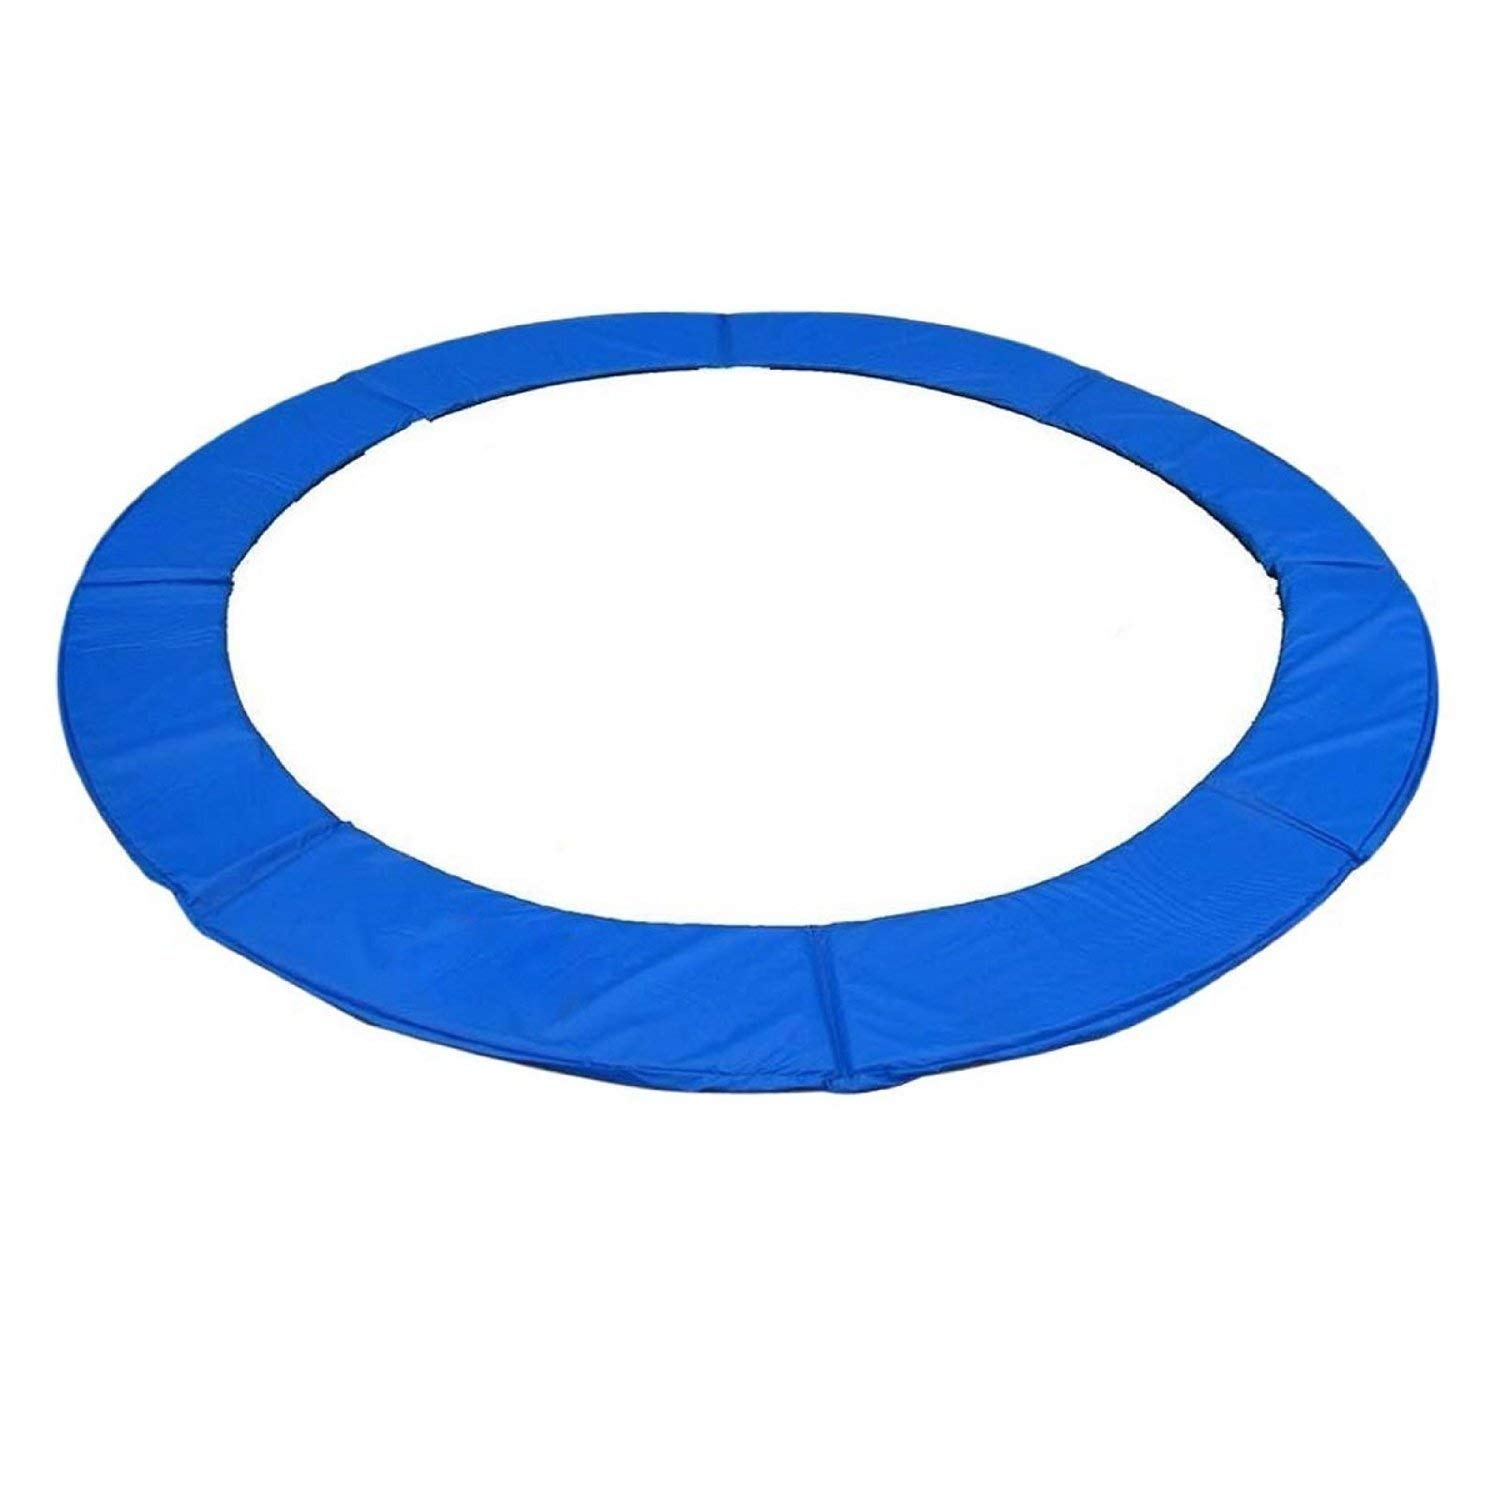 GYMAX Trampoline Pads, 12' Edge Cover Springs Safety Frame Pad Protection Cover Pad Trampoline Accessories (Blue)